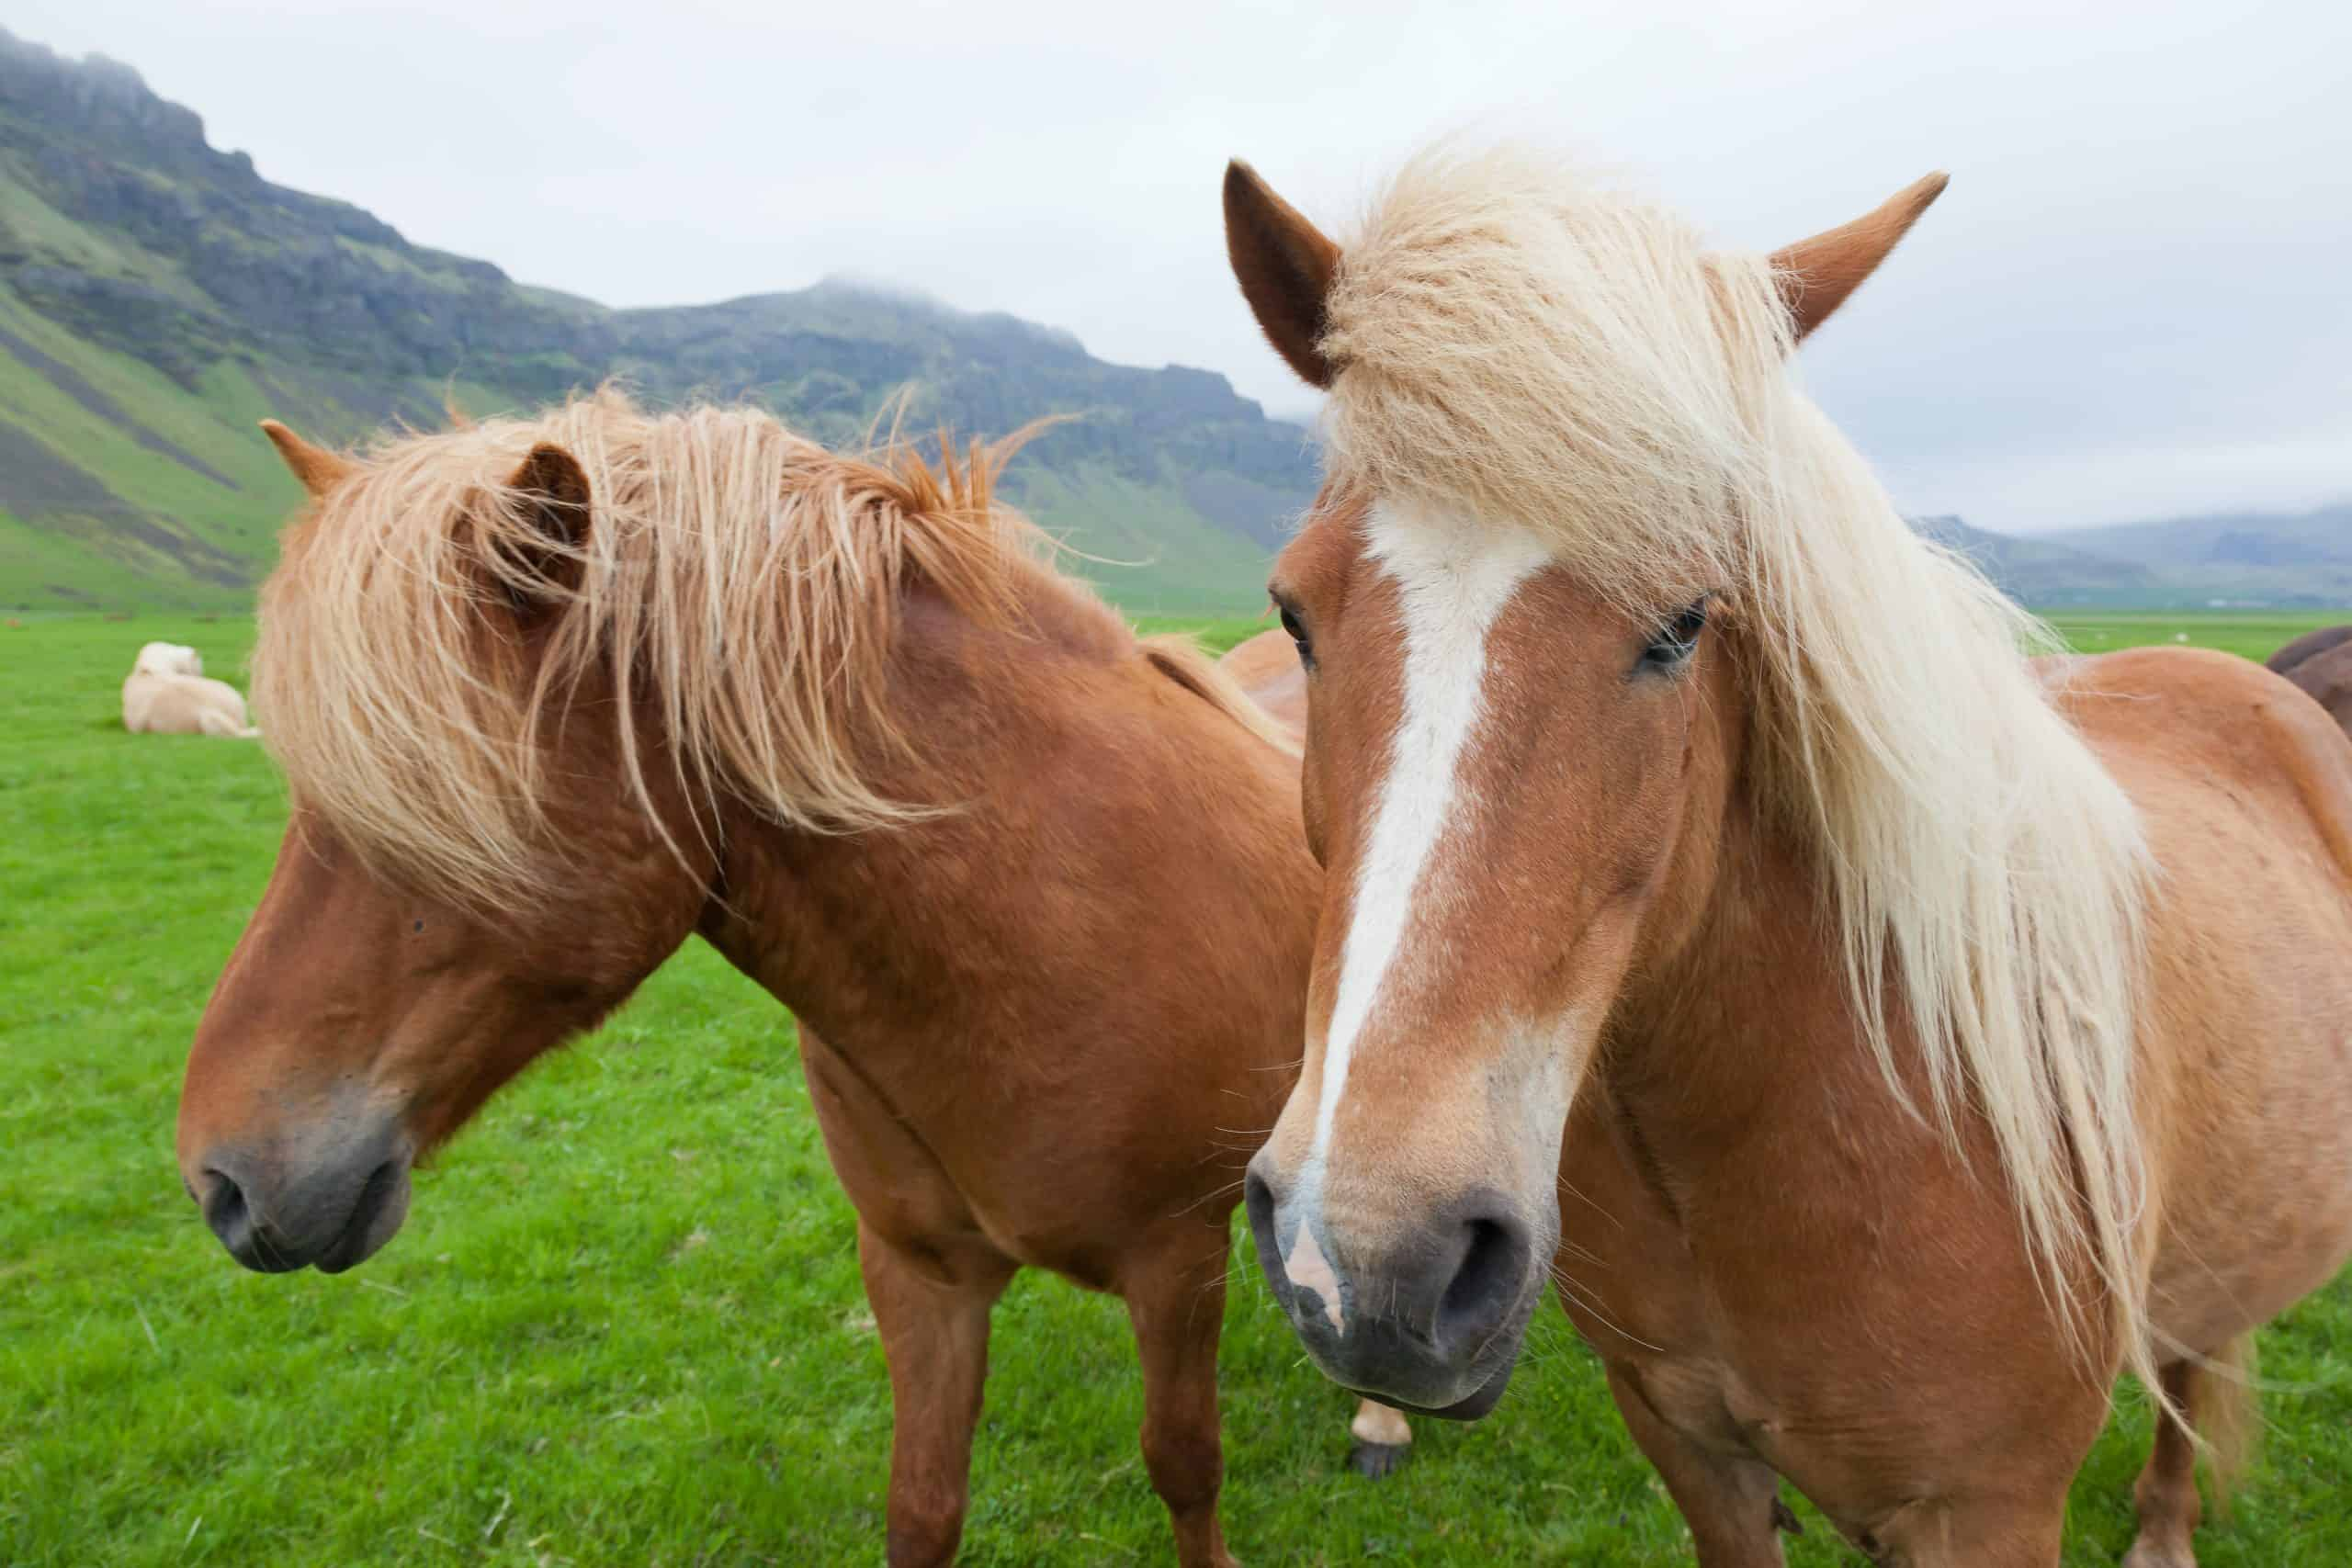 Two nice horses with chestnut hair coat walking in a summer